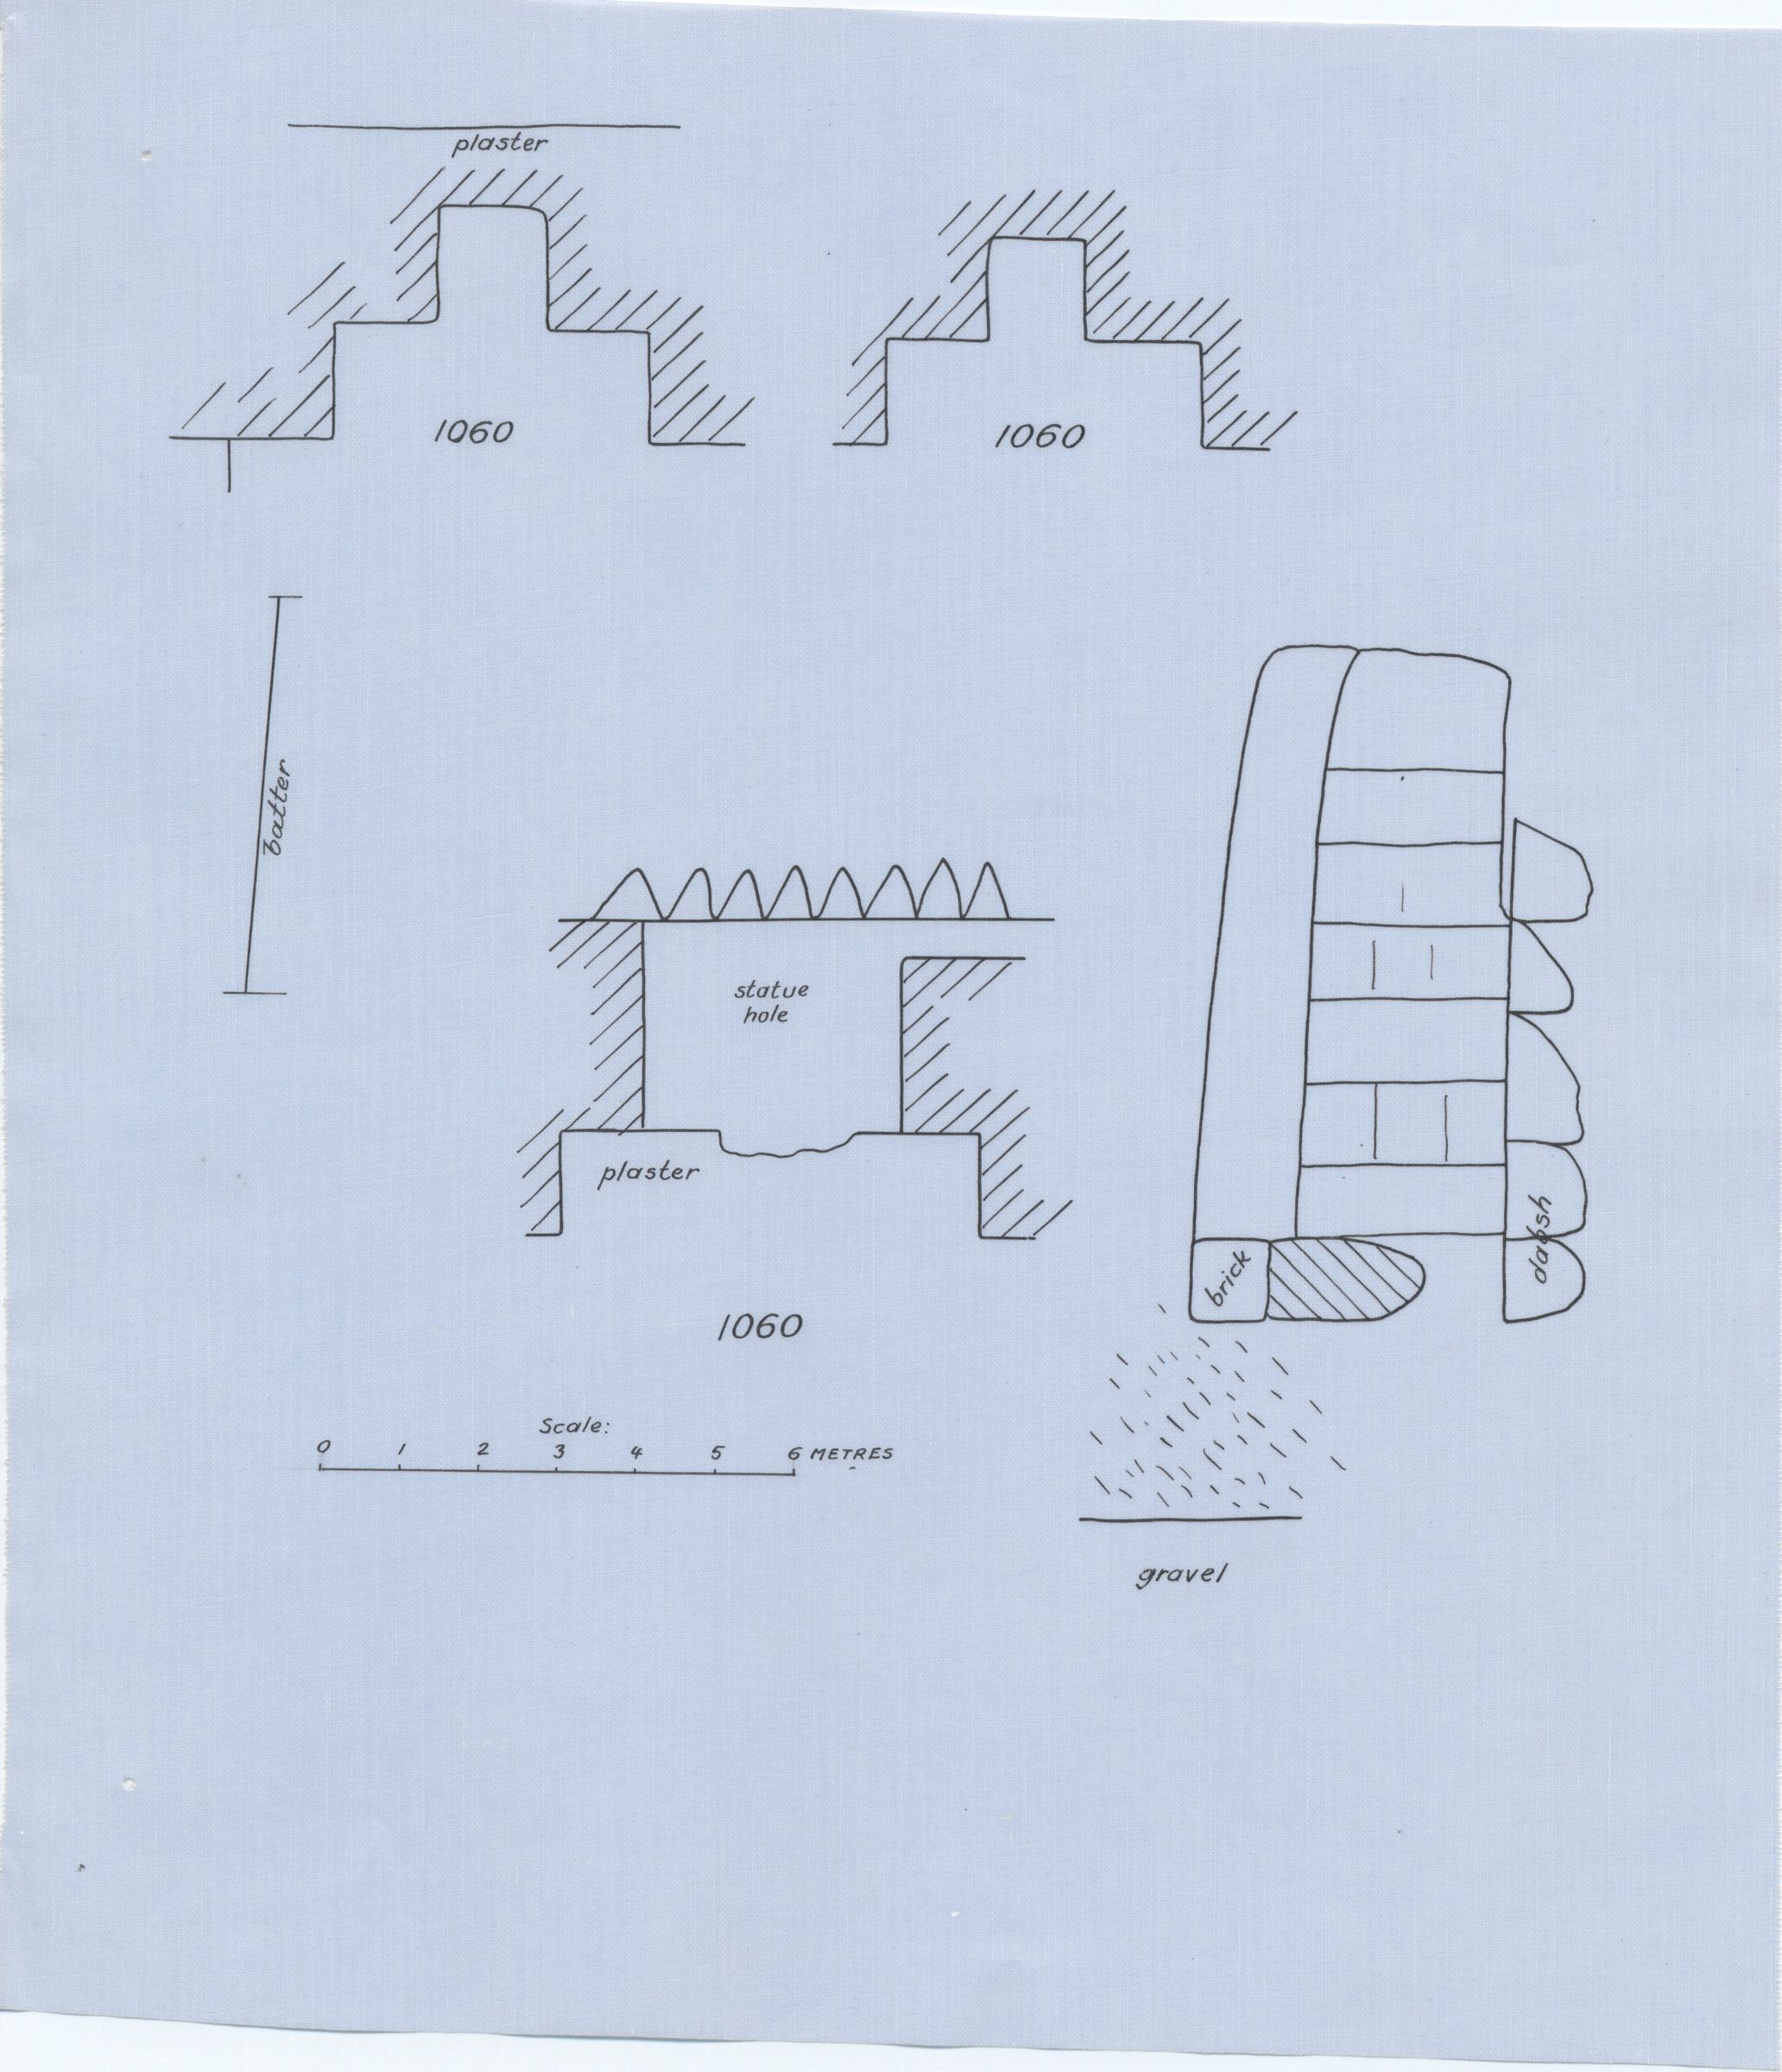 Maps and plans: G 1060, Plan and section of niches